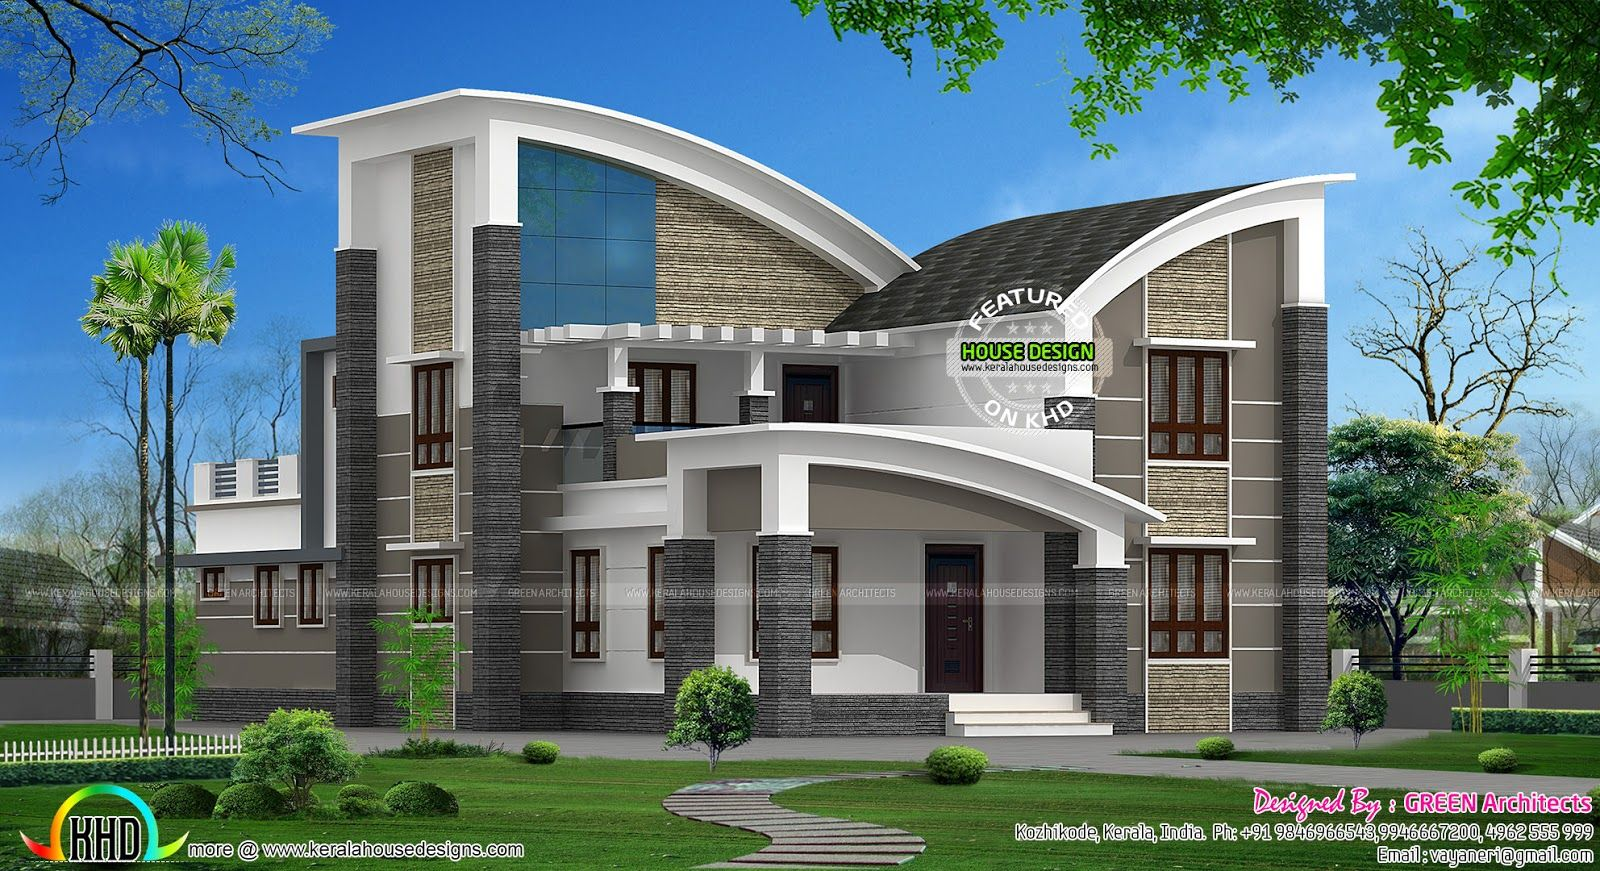 Modern style curved roof villa home inspiration for Modern mansion house designs